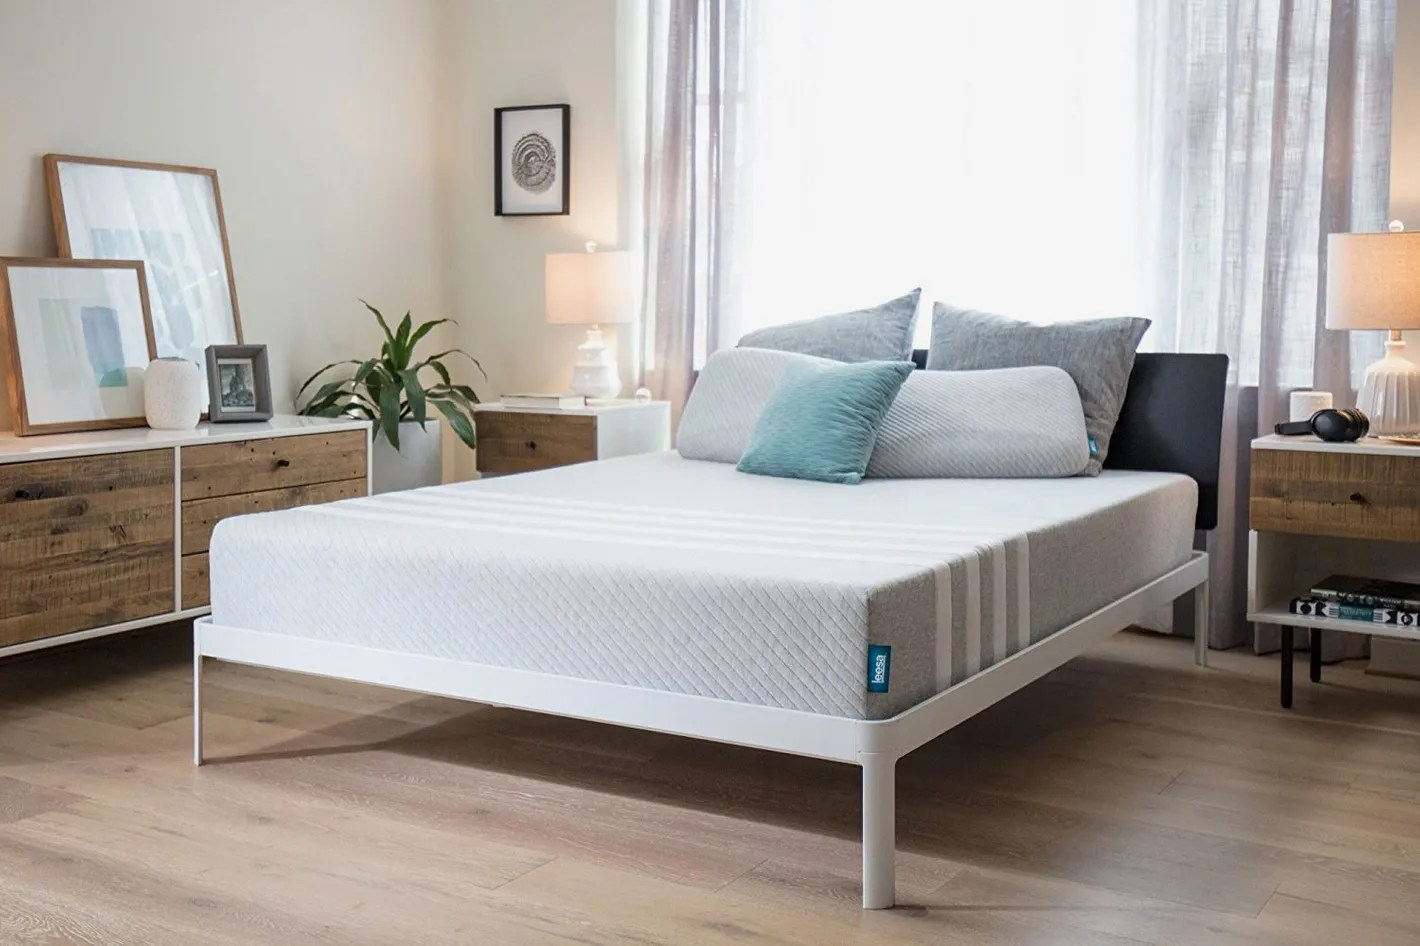 Big Bed Company Best Mattress You Can Buy In 2018